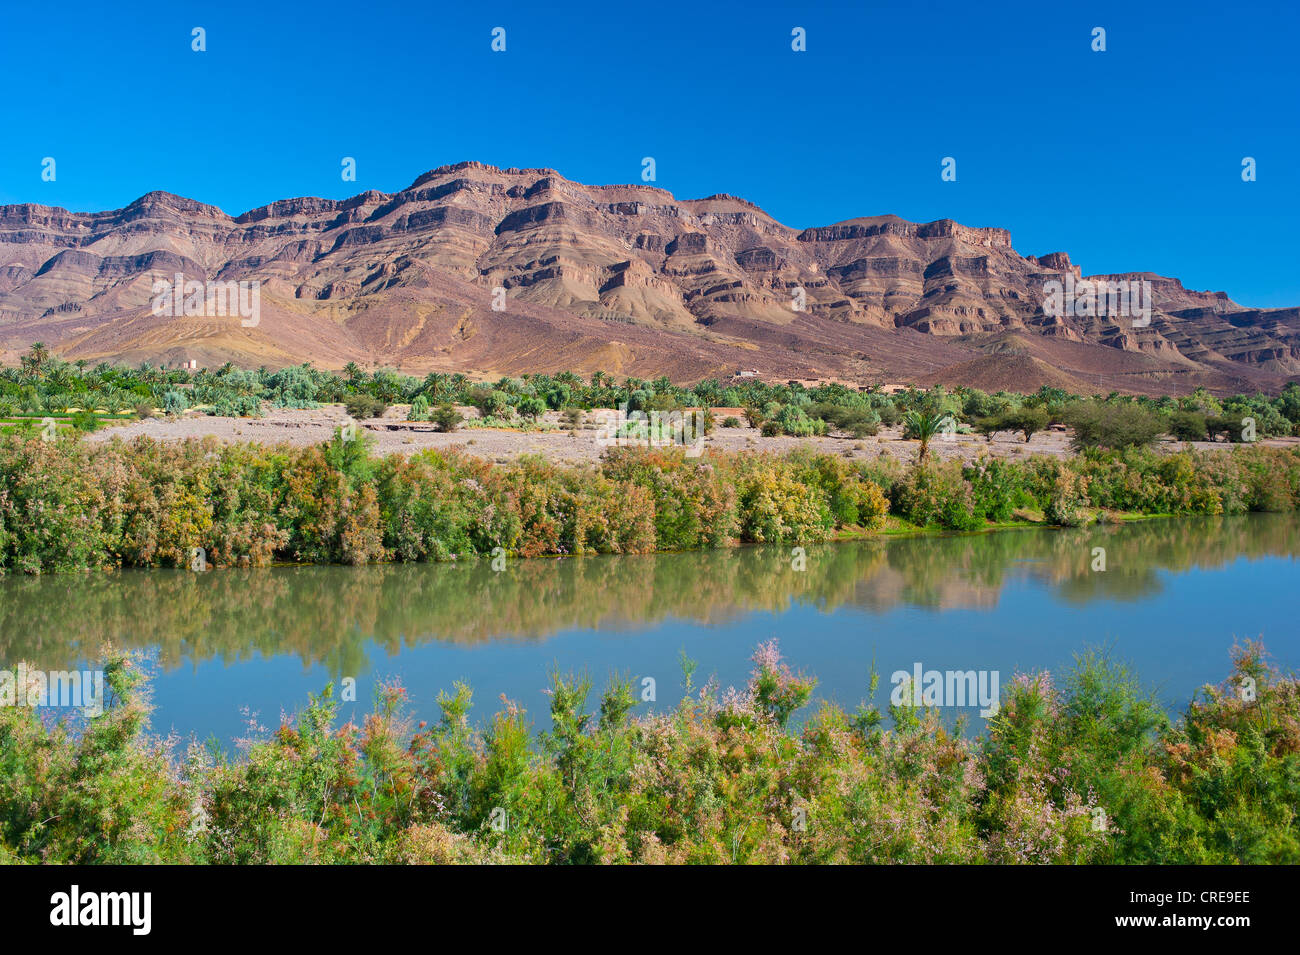 Draa River, mountain range of the Djebel Kissane table mountain at the back, Draa Valley, southern Morocco, Morocco, - Stock Image